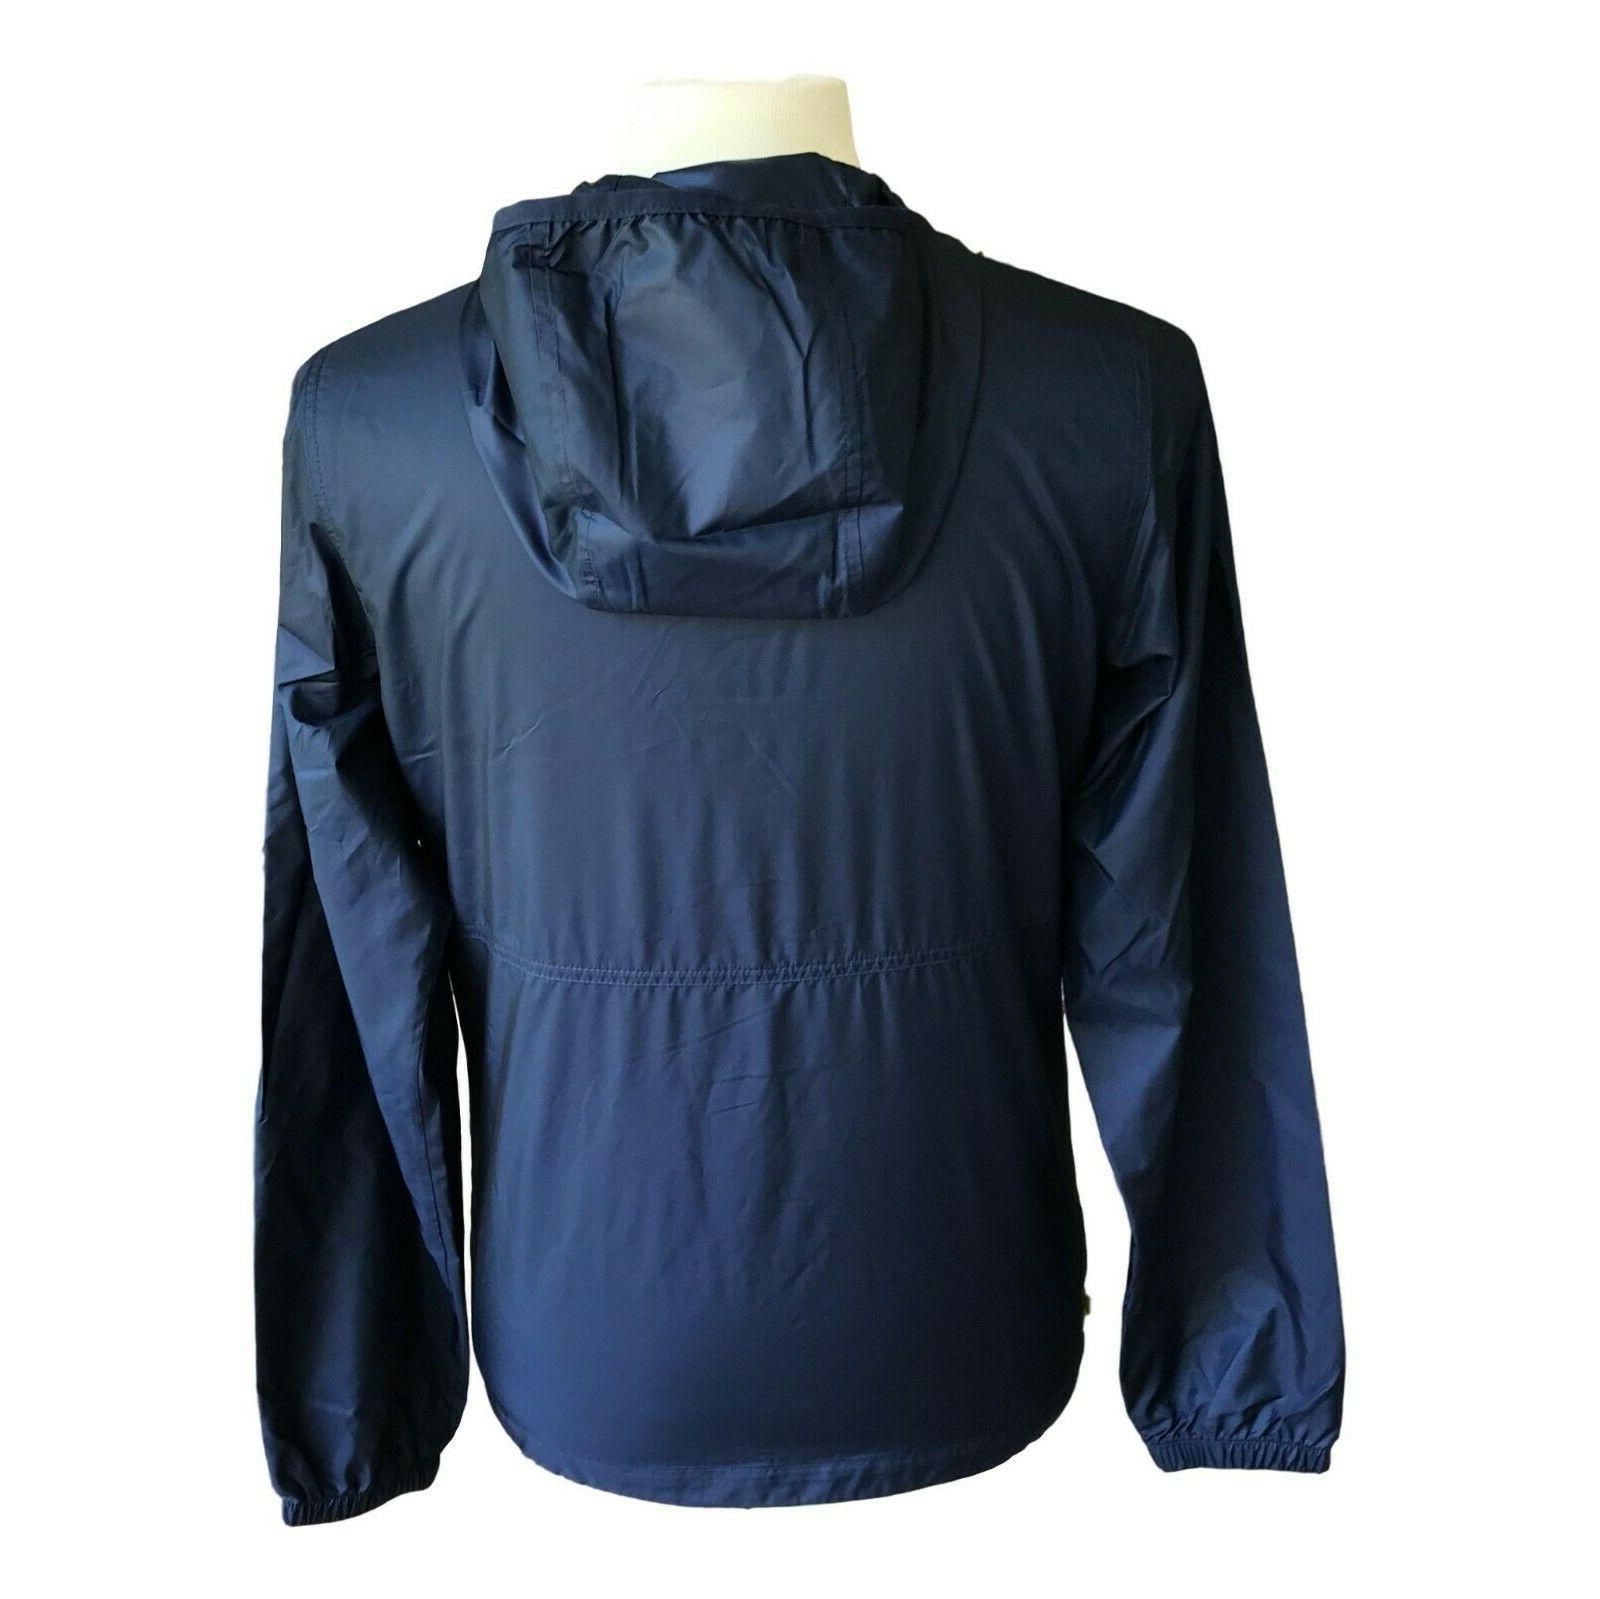 New Morning packable hooded light jacket